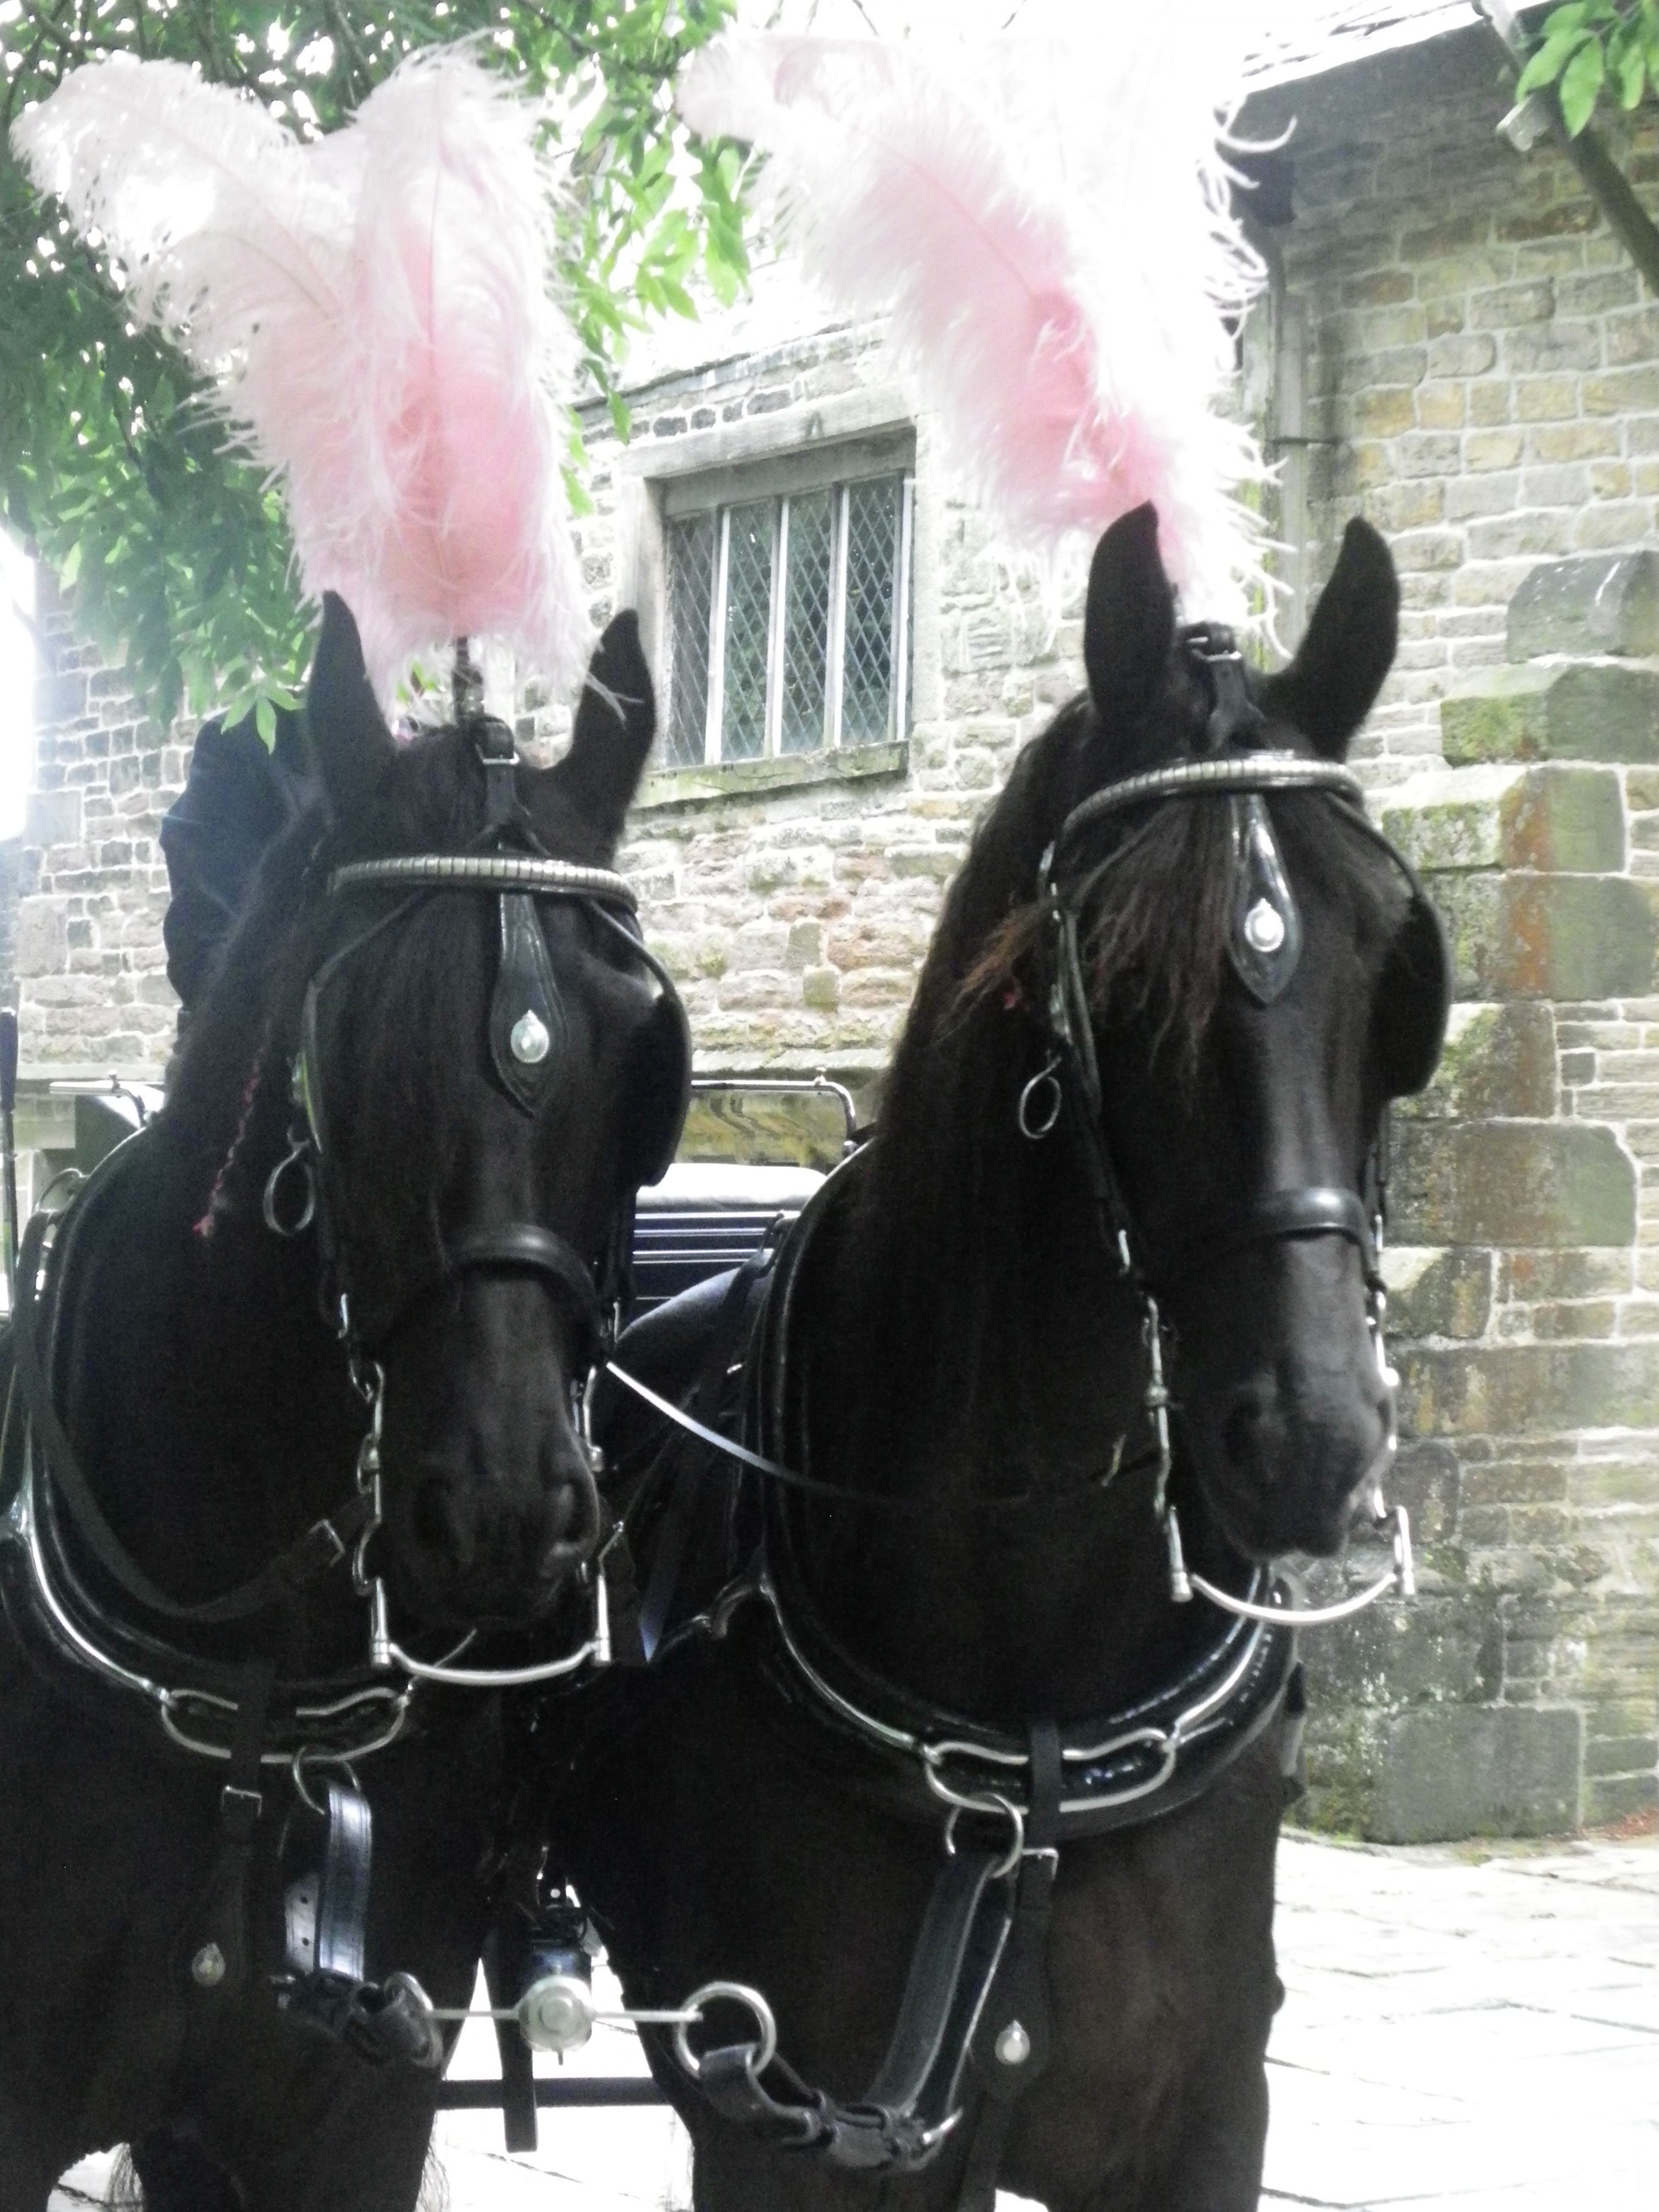 pair of black horses with baby pink plumes